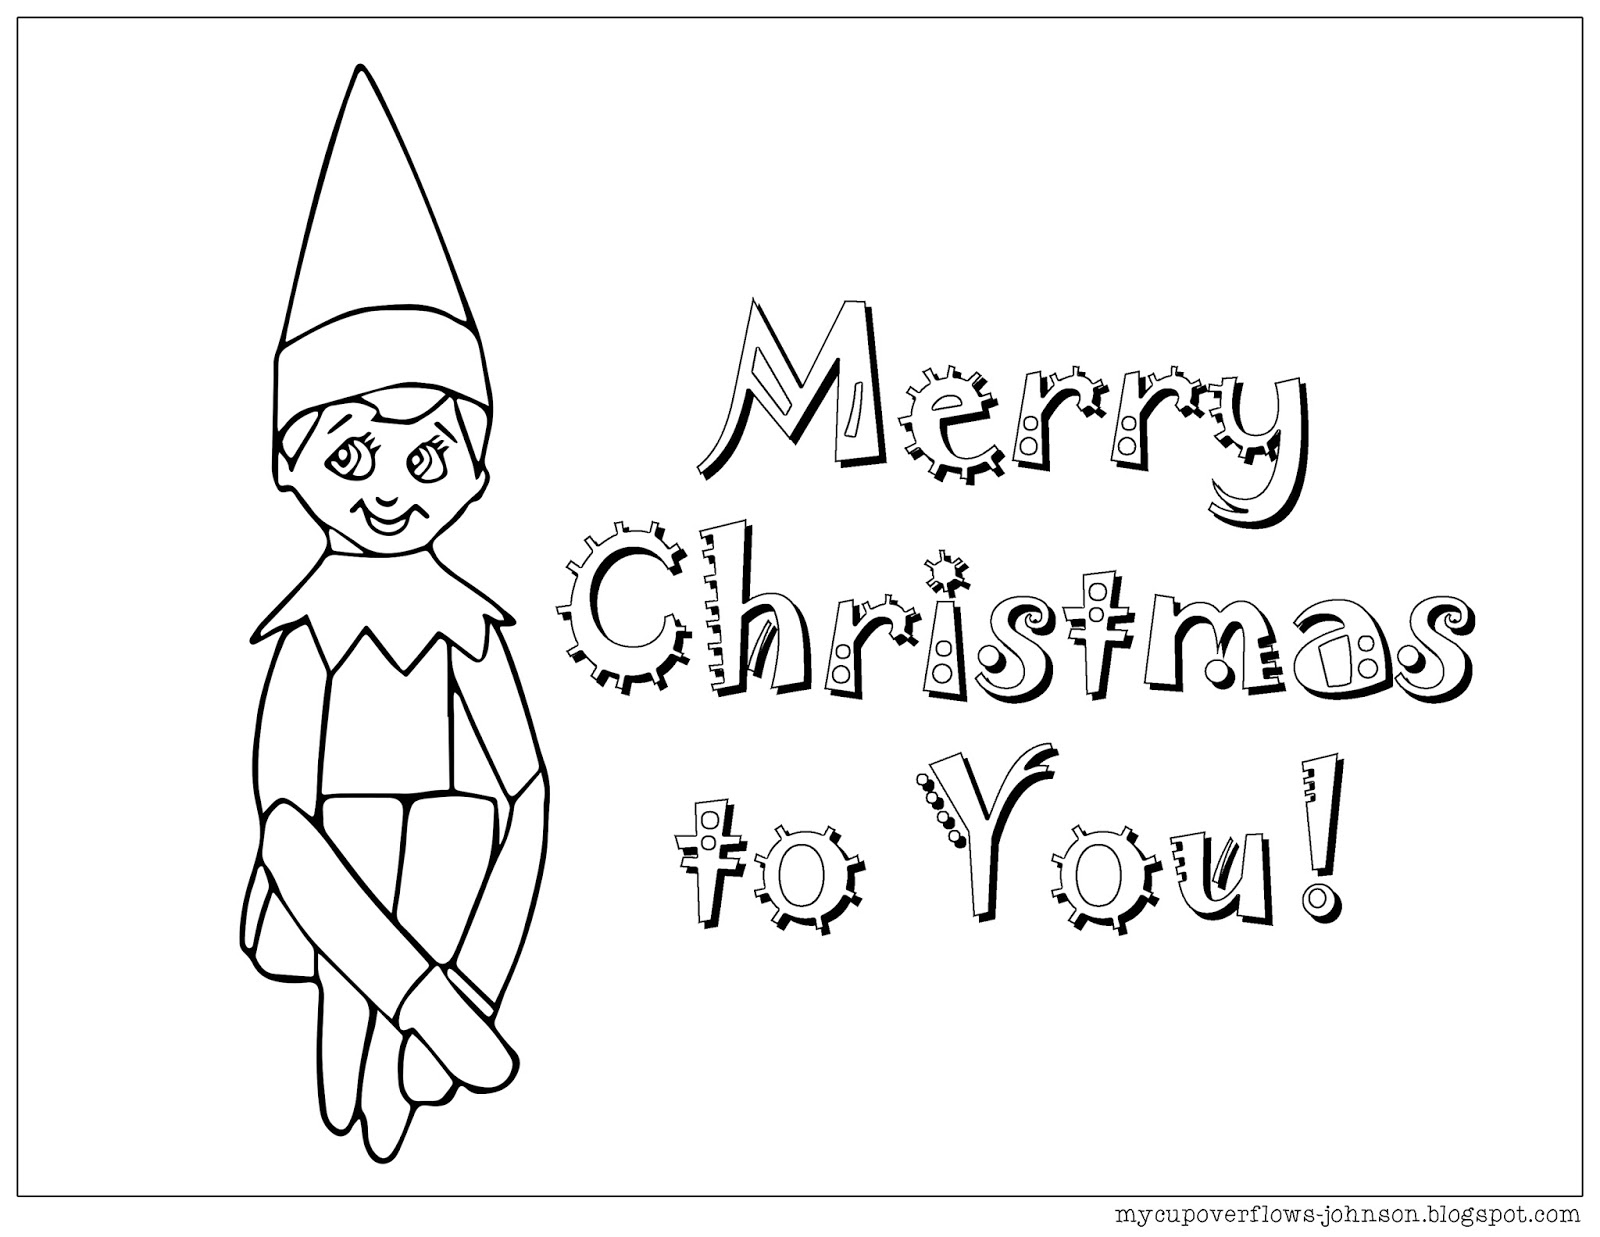 Crafty image in elf on the shelf printable coloring pages